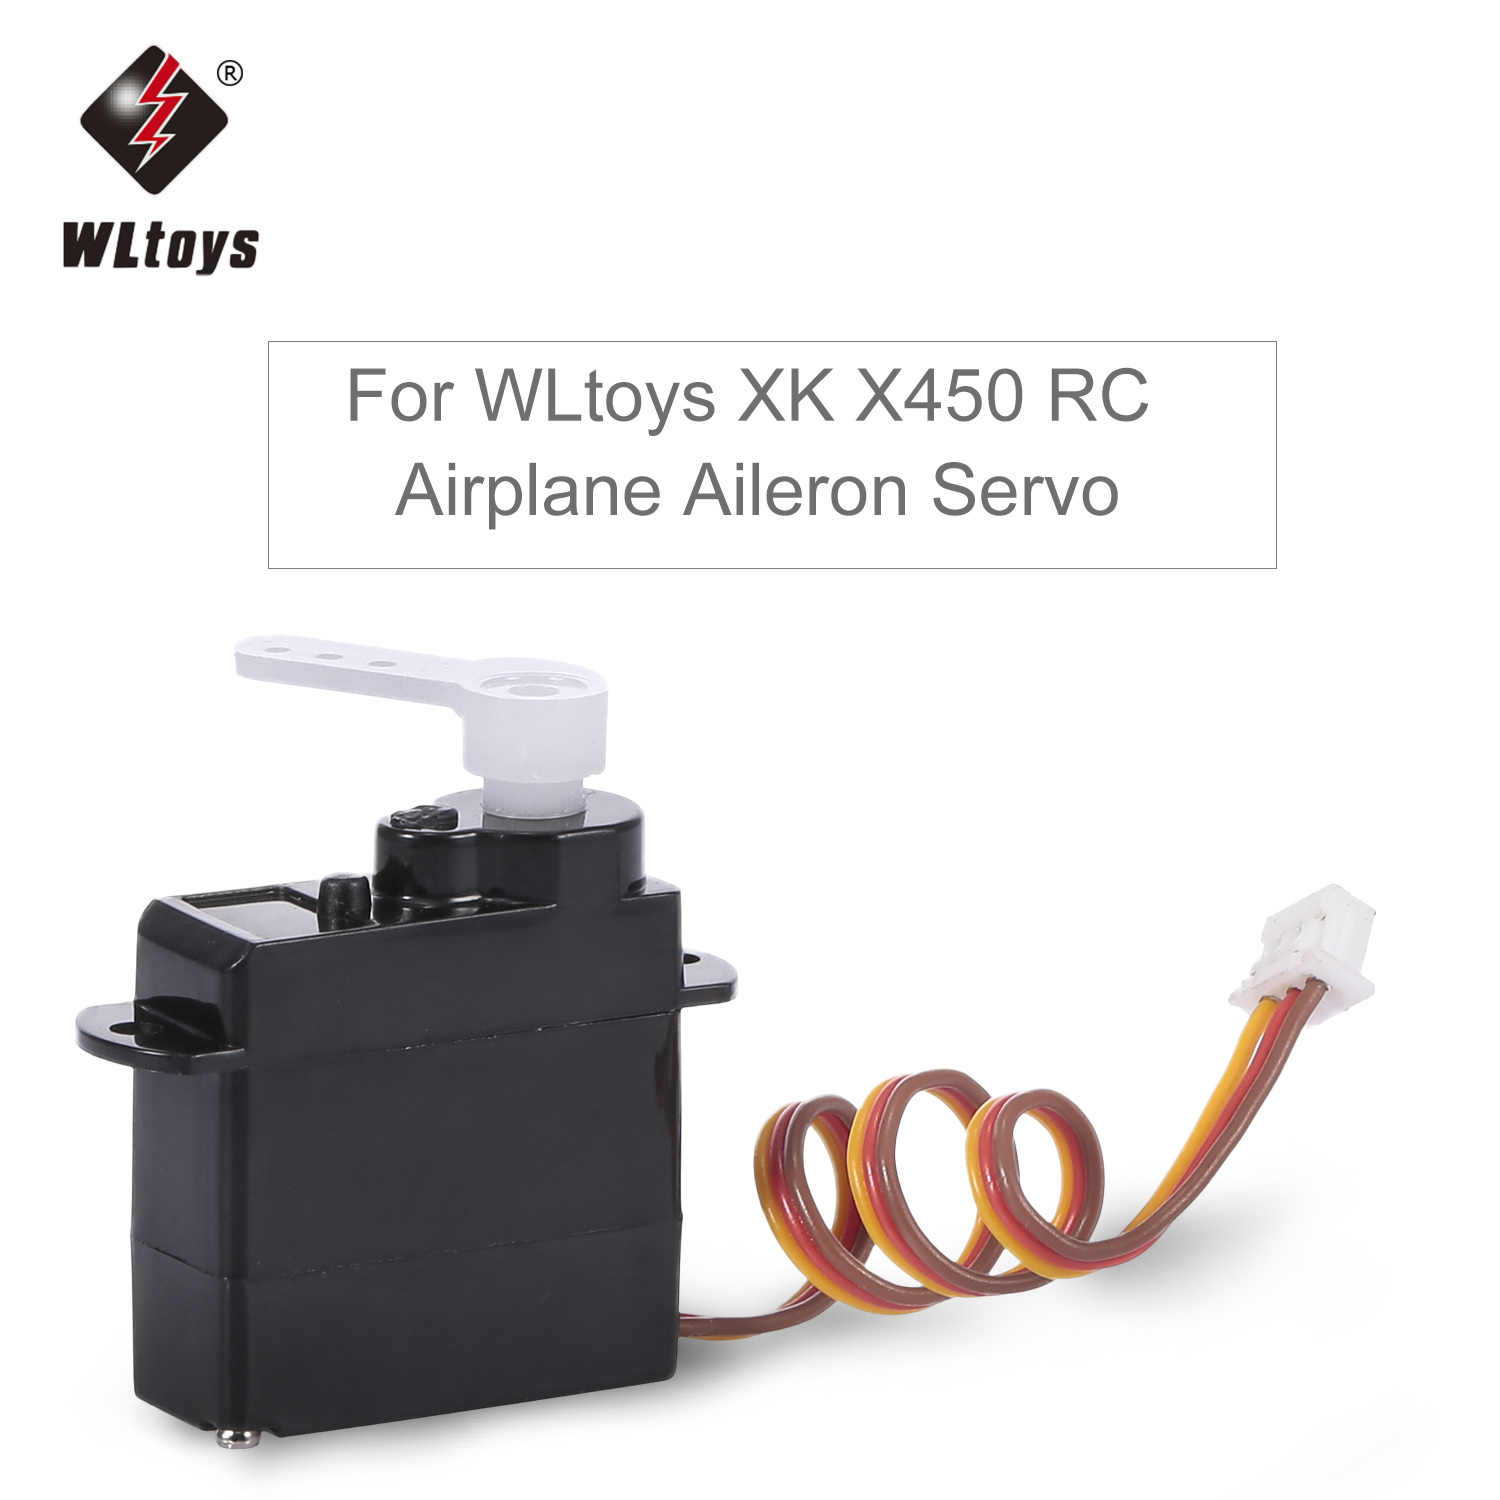 Aileron Front Motor Driving Servo for WLtoys XK X450 RC Airplane Aircraft Helicopter Fixed Wing